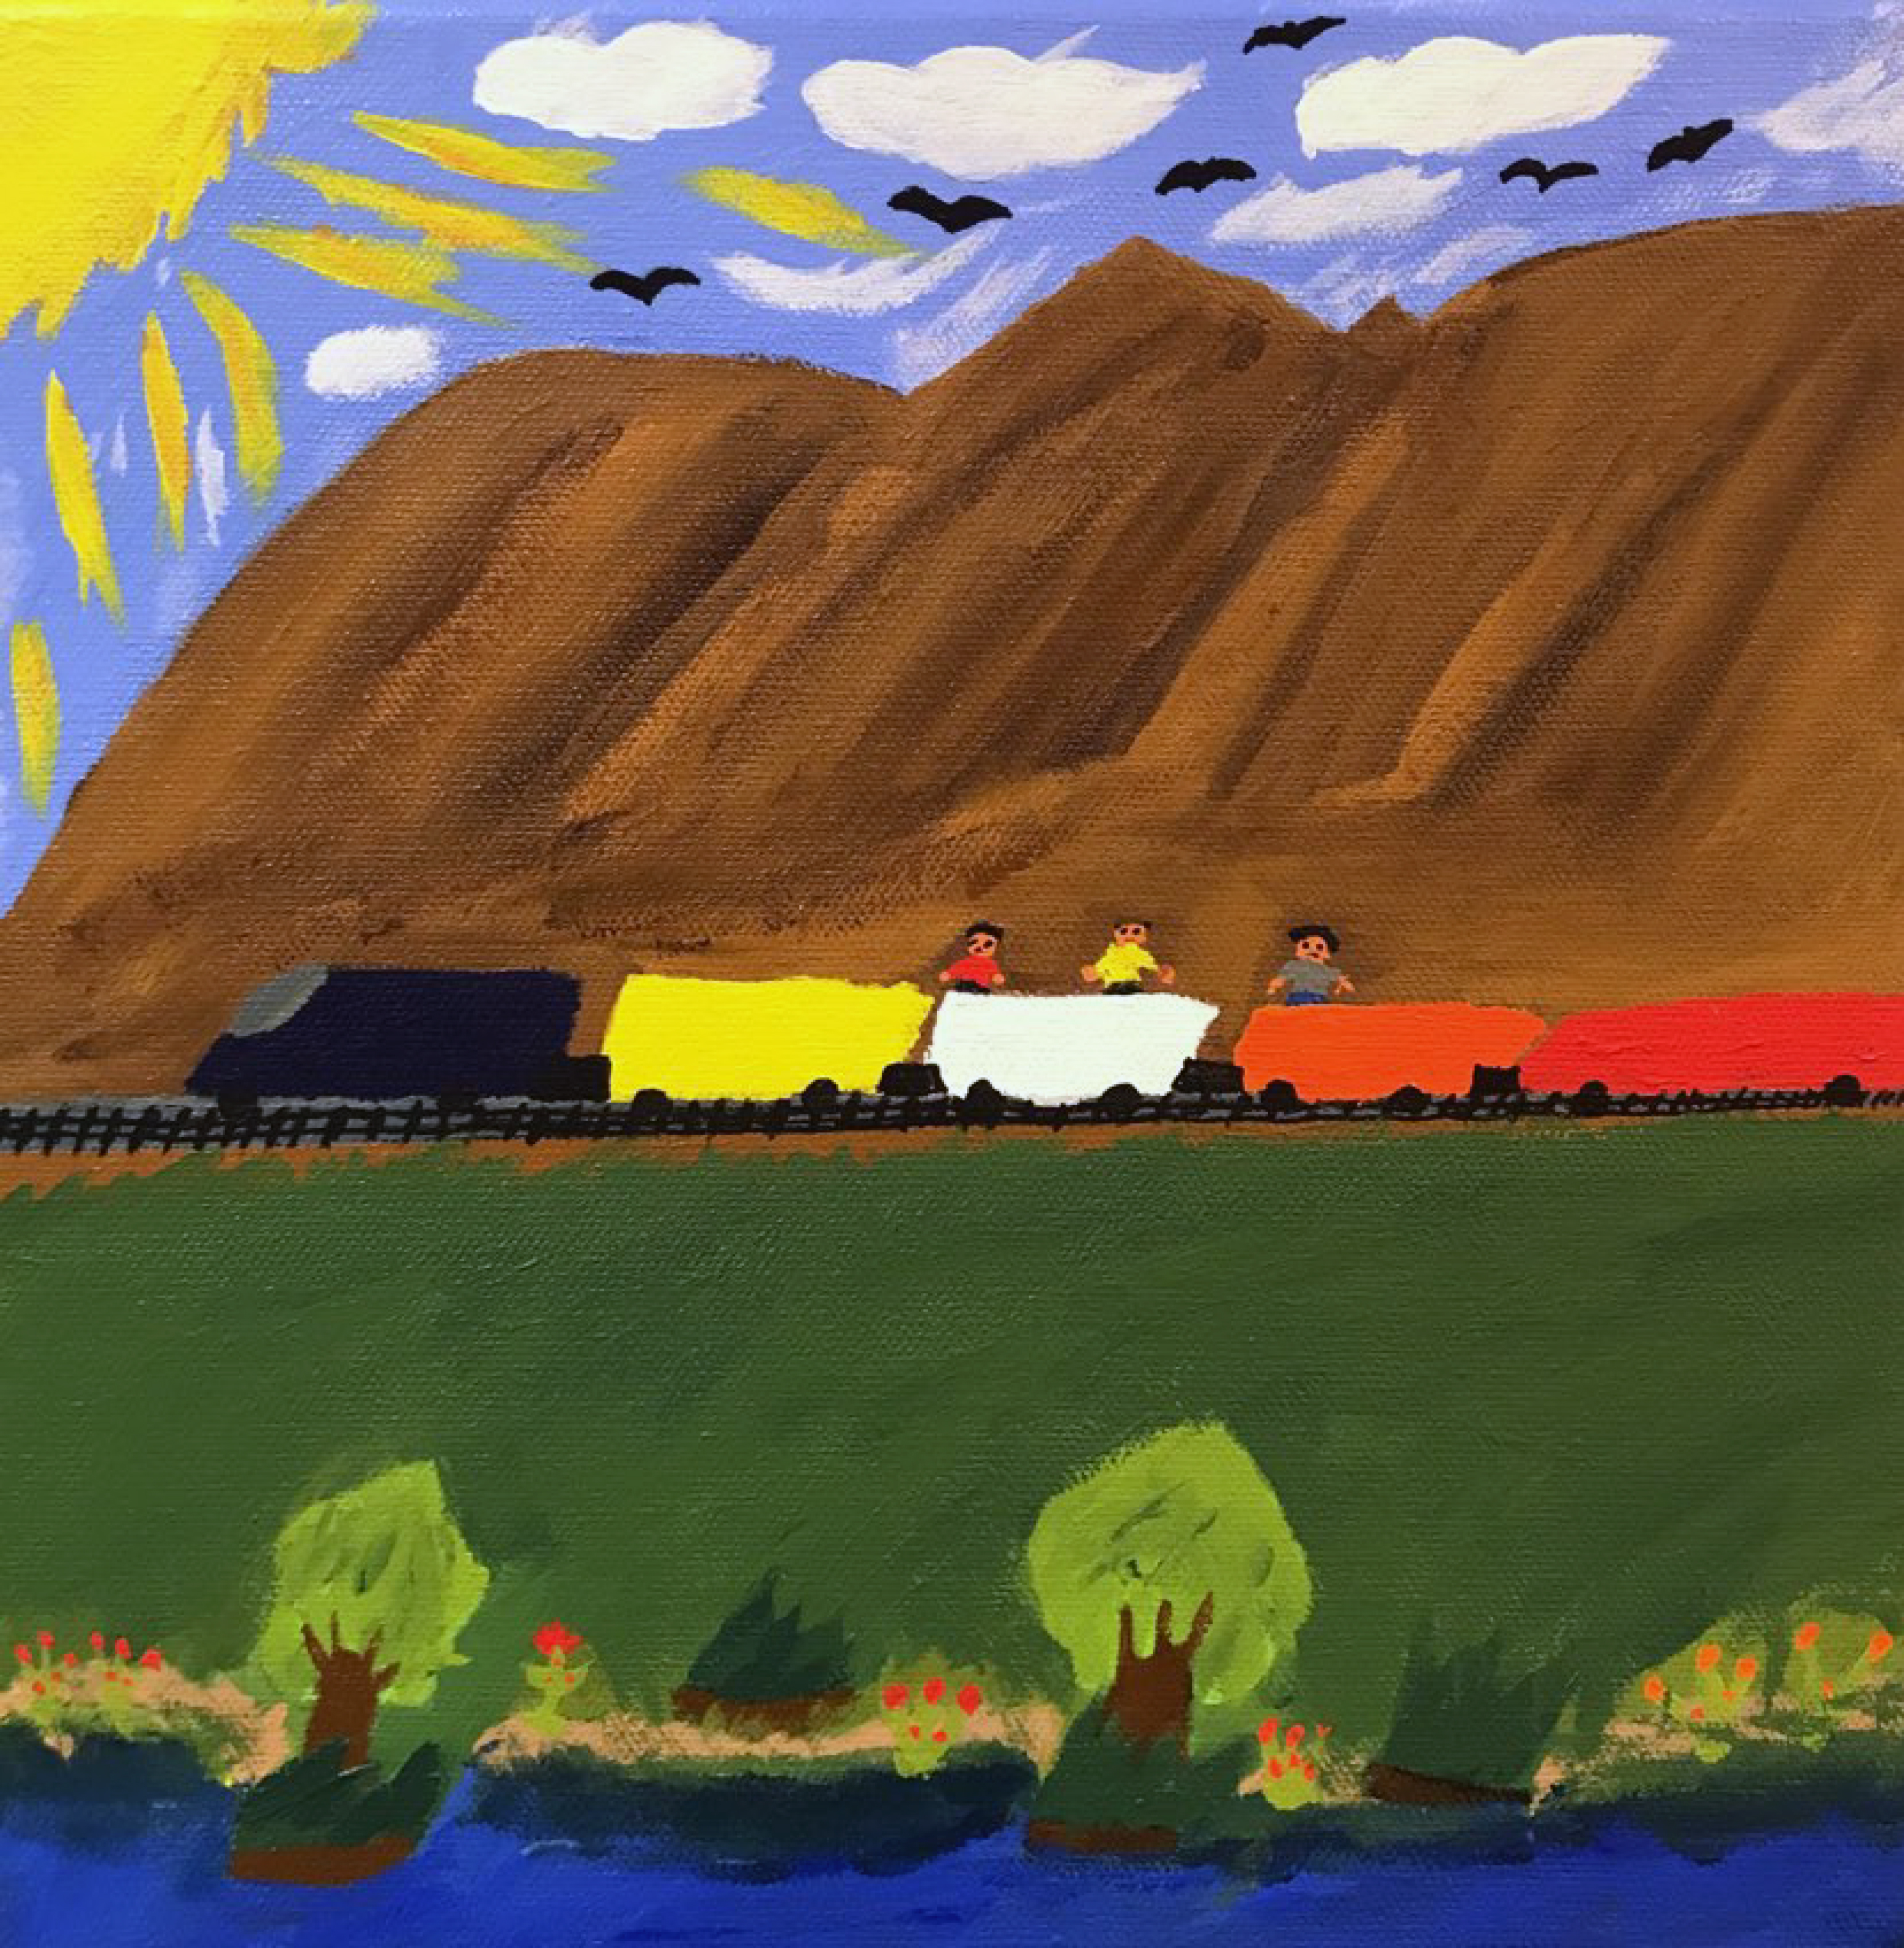 A train in front of mountains with three figures on top of the train. There is a sun in the lefthand corner, birds in the sky, and plants and a river at the front of the painting.